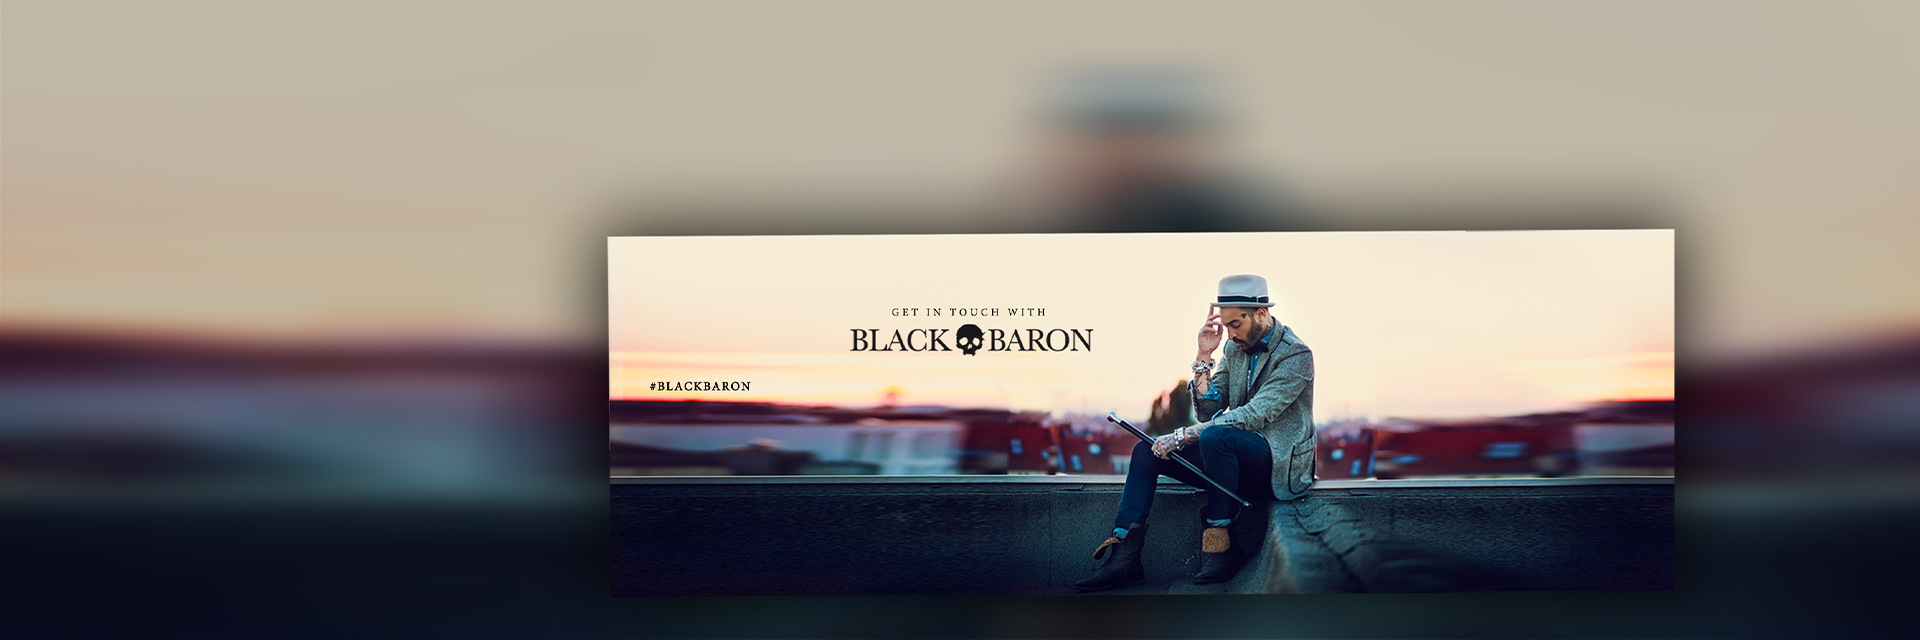 Get in touch with BlackBaron